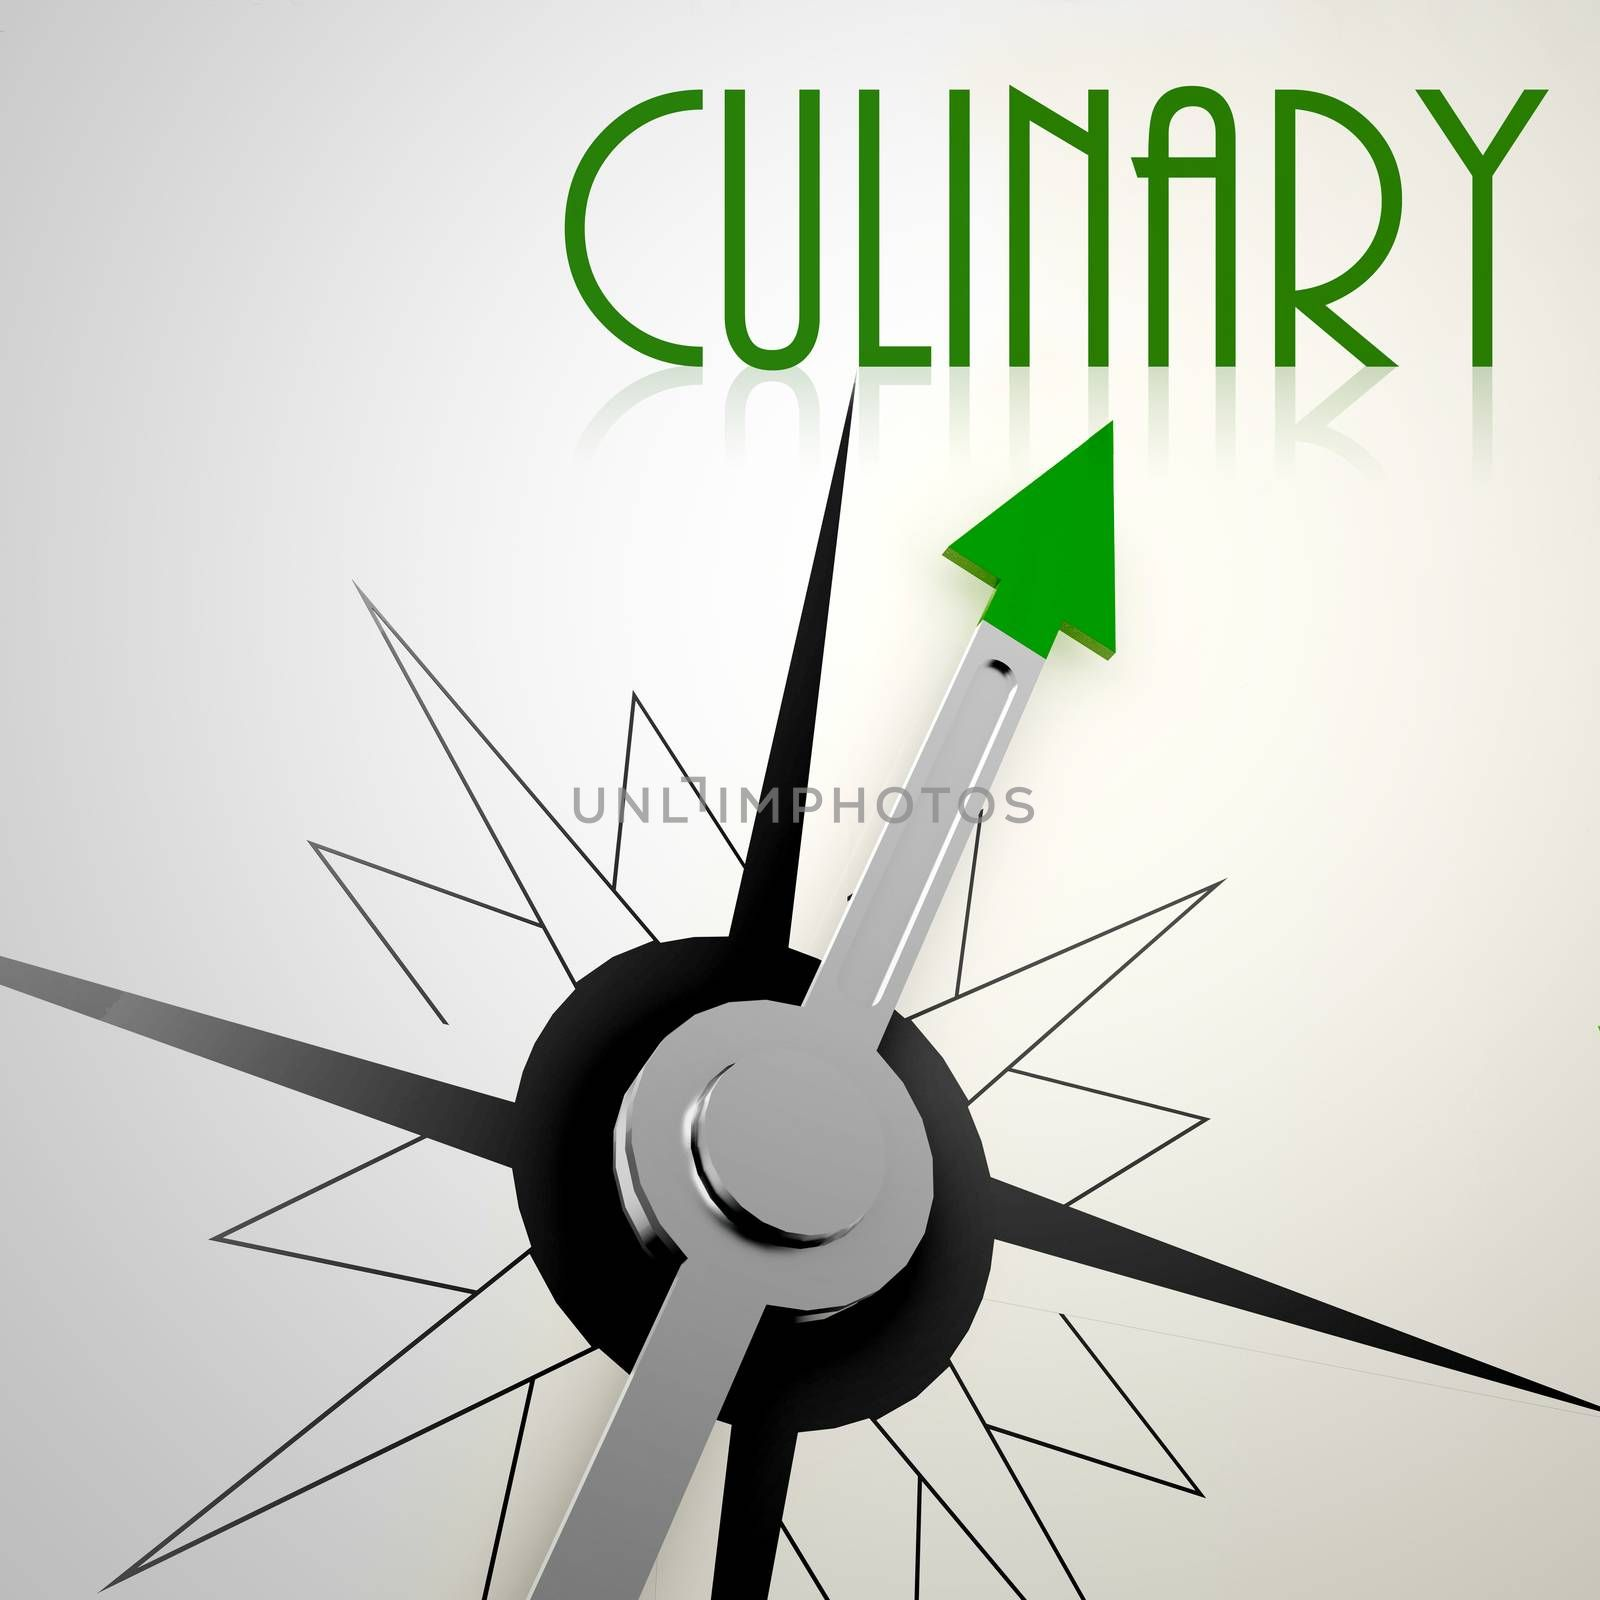 Culinary on green compass. Concept of healthy lifestyle